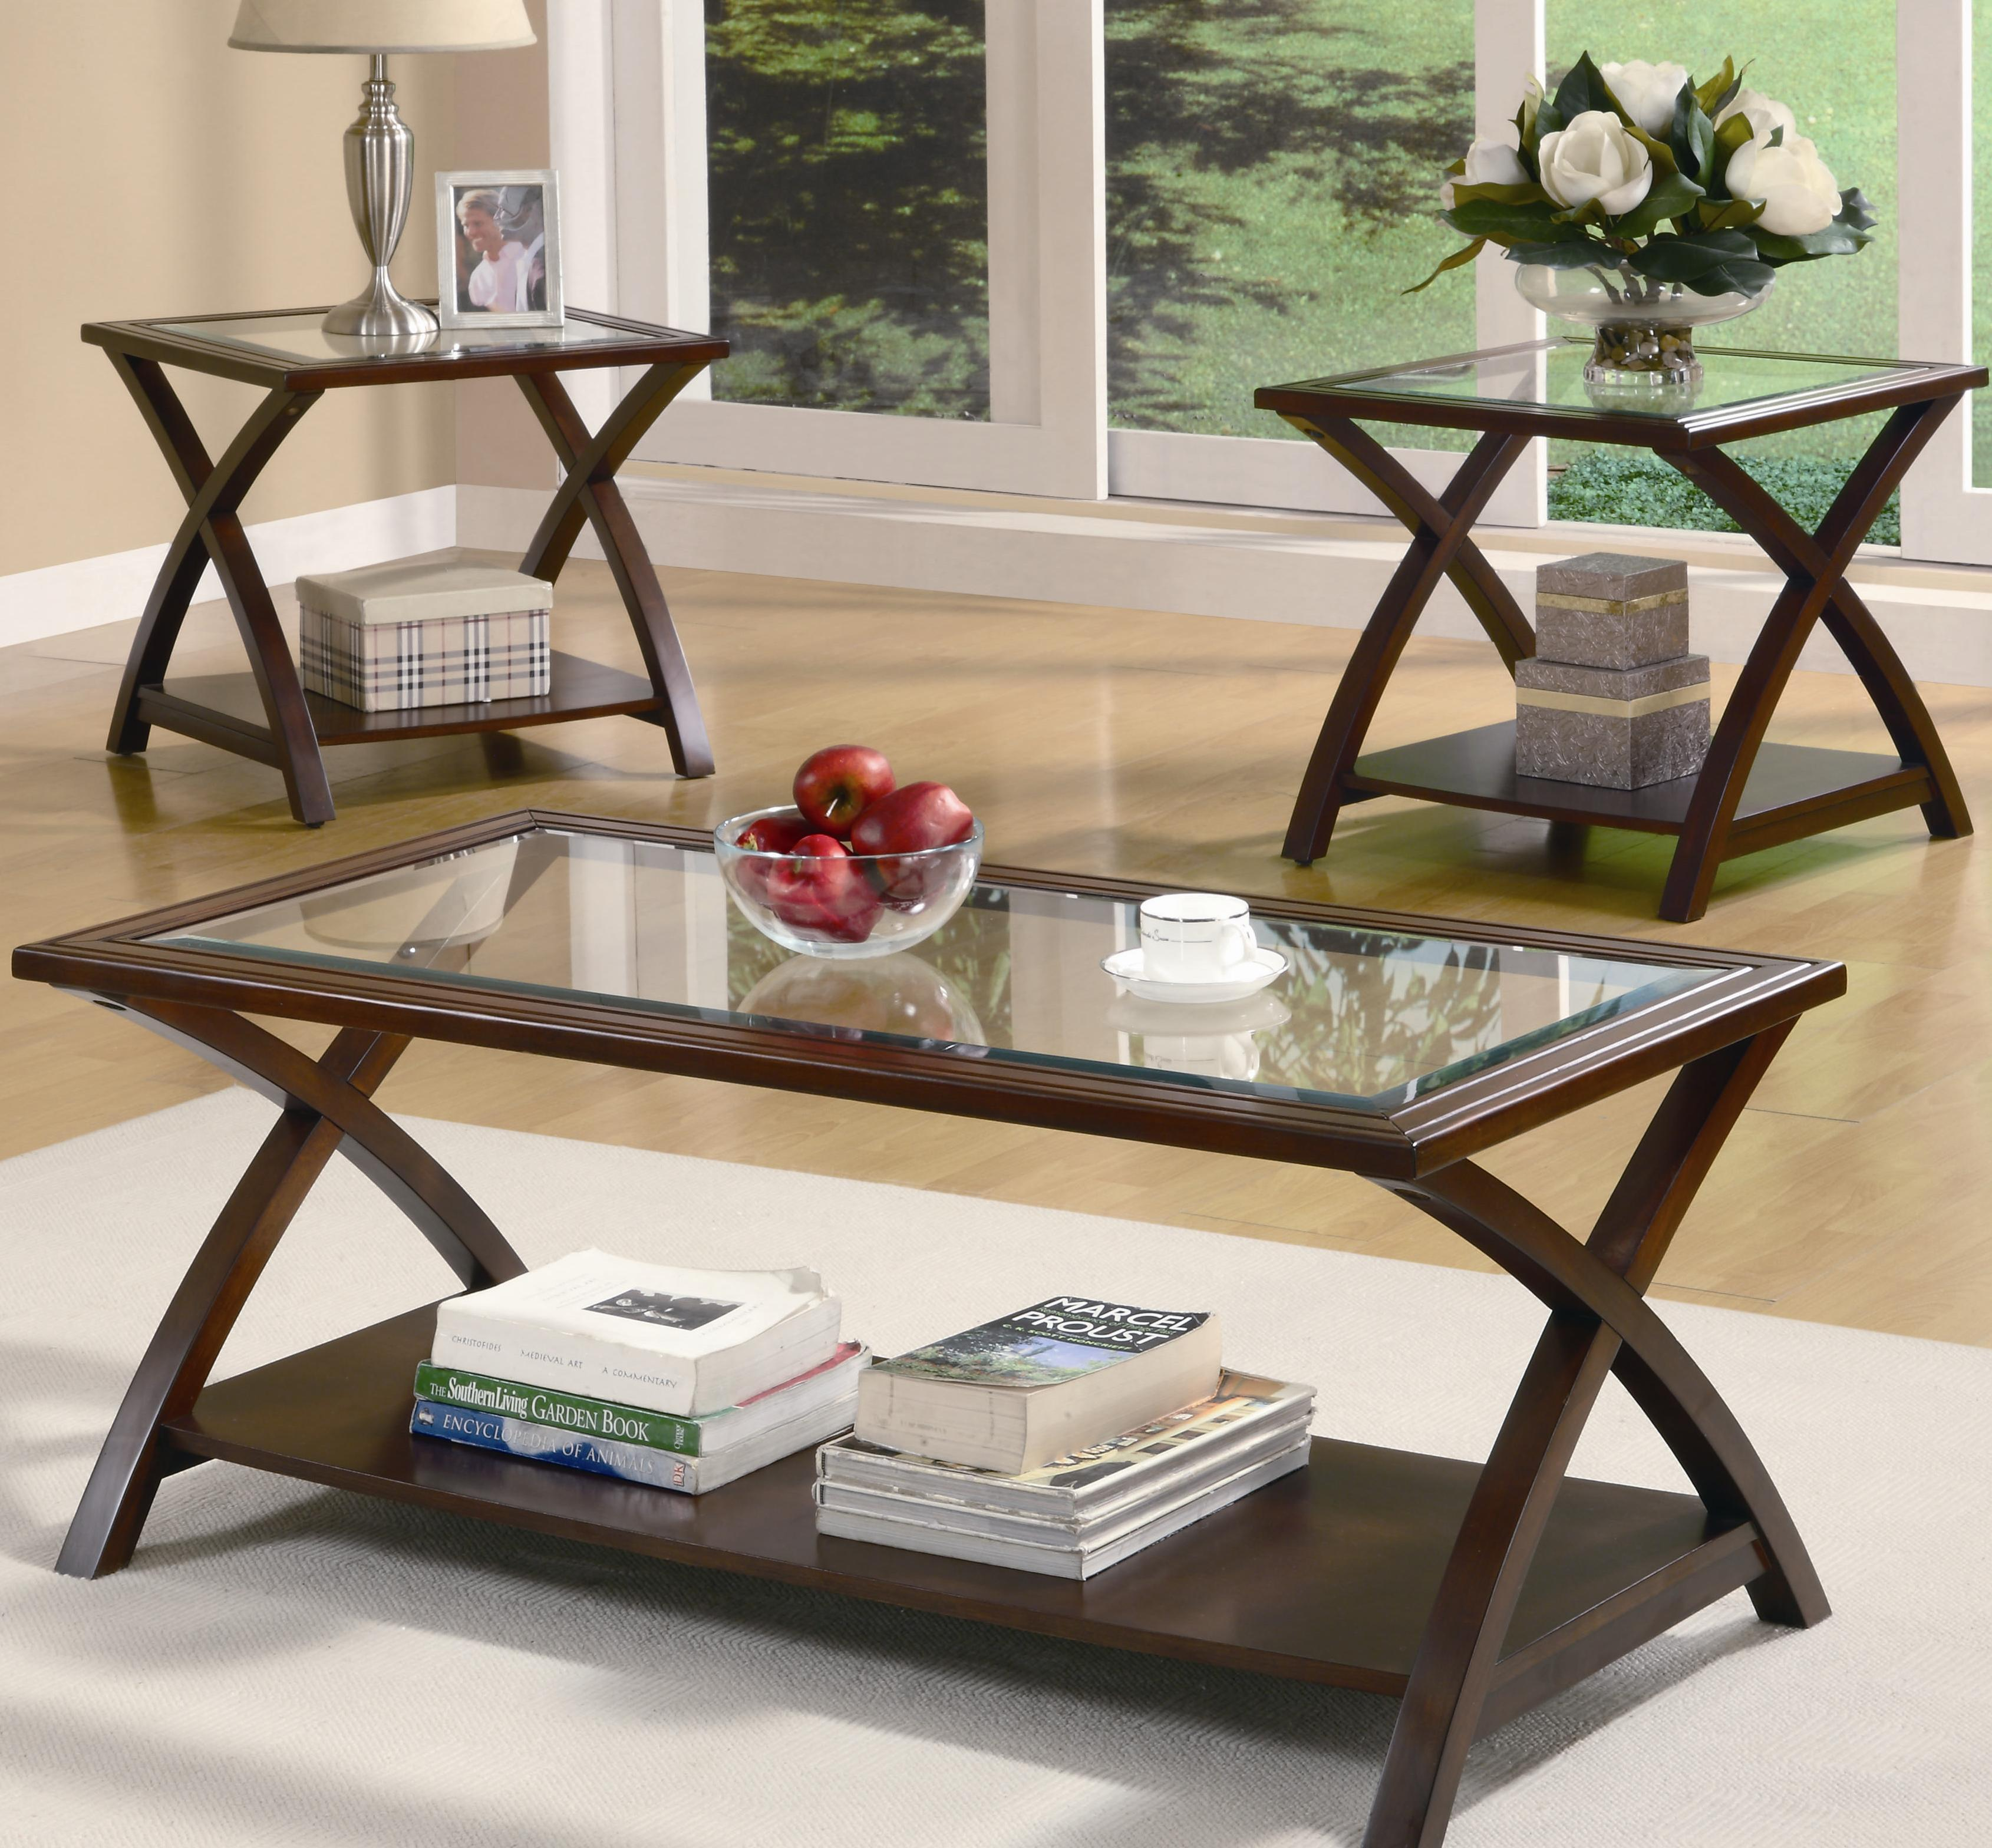 marvelous with glass cocktail table end tables tremendous glendale star furniture sets black nesting rustic tro oak shabby wells coffee light accent enamour dining ornaments ikea